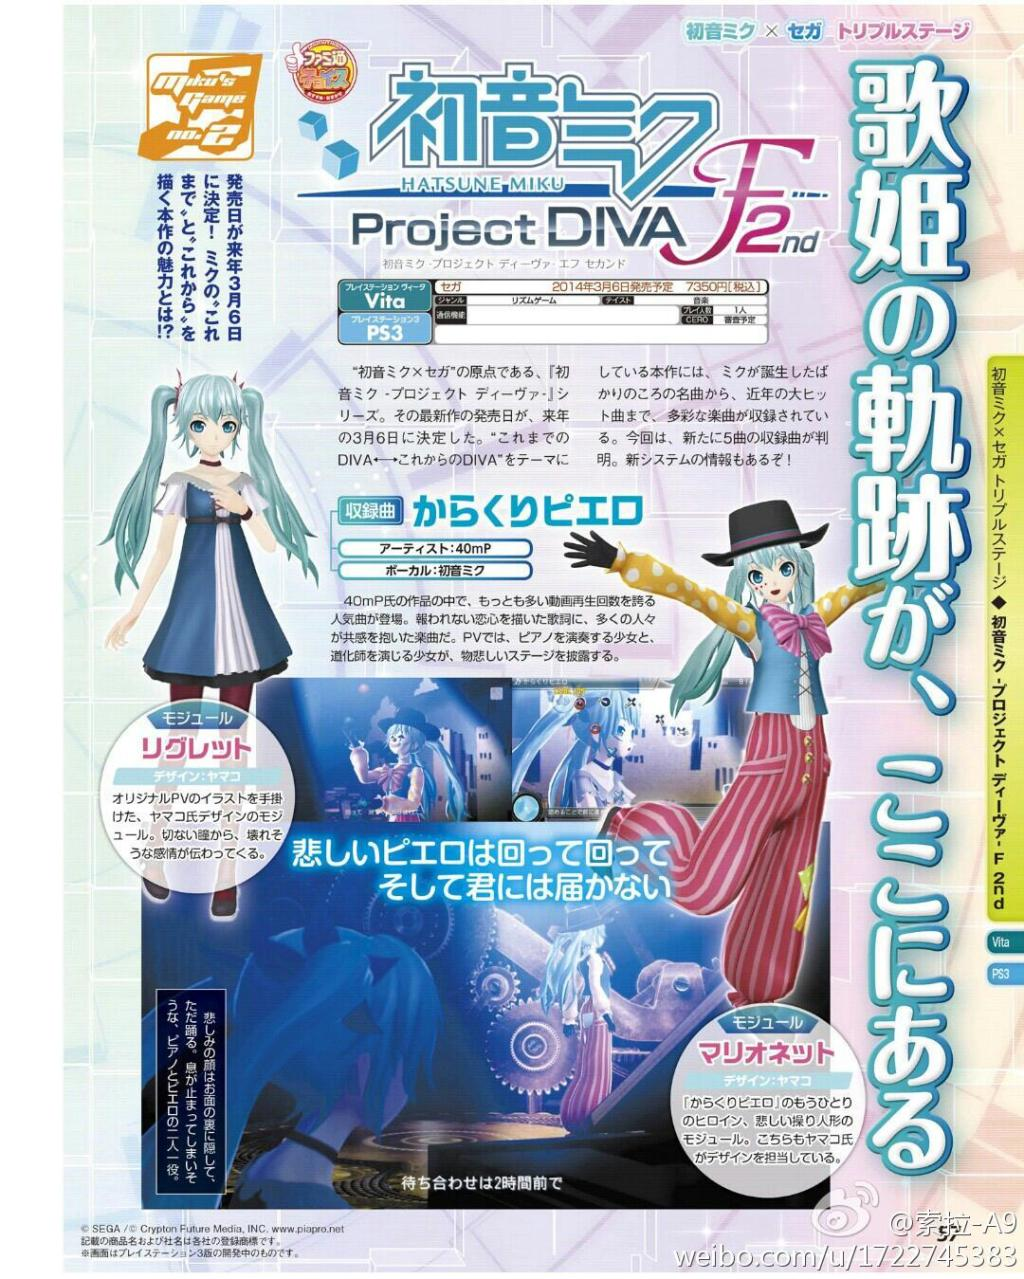 projectdiva-f2nd-scan1